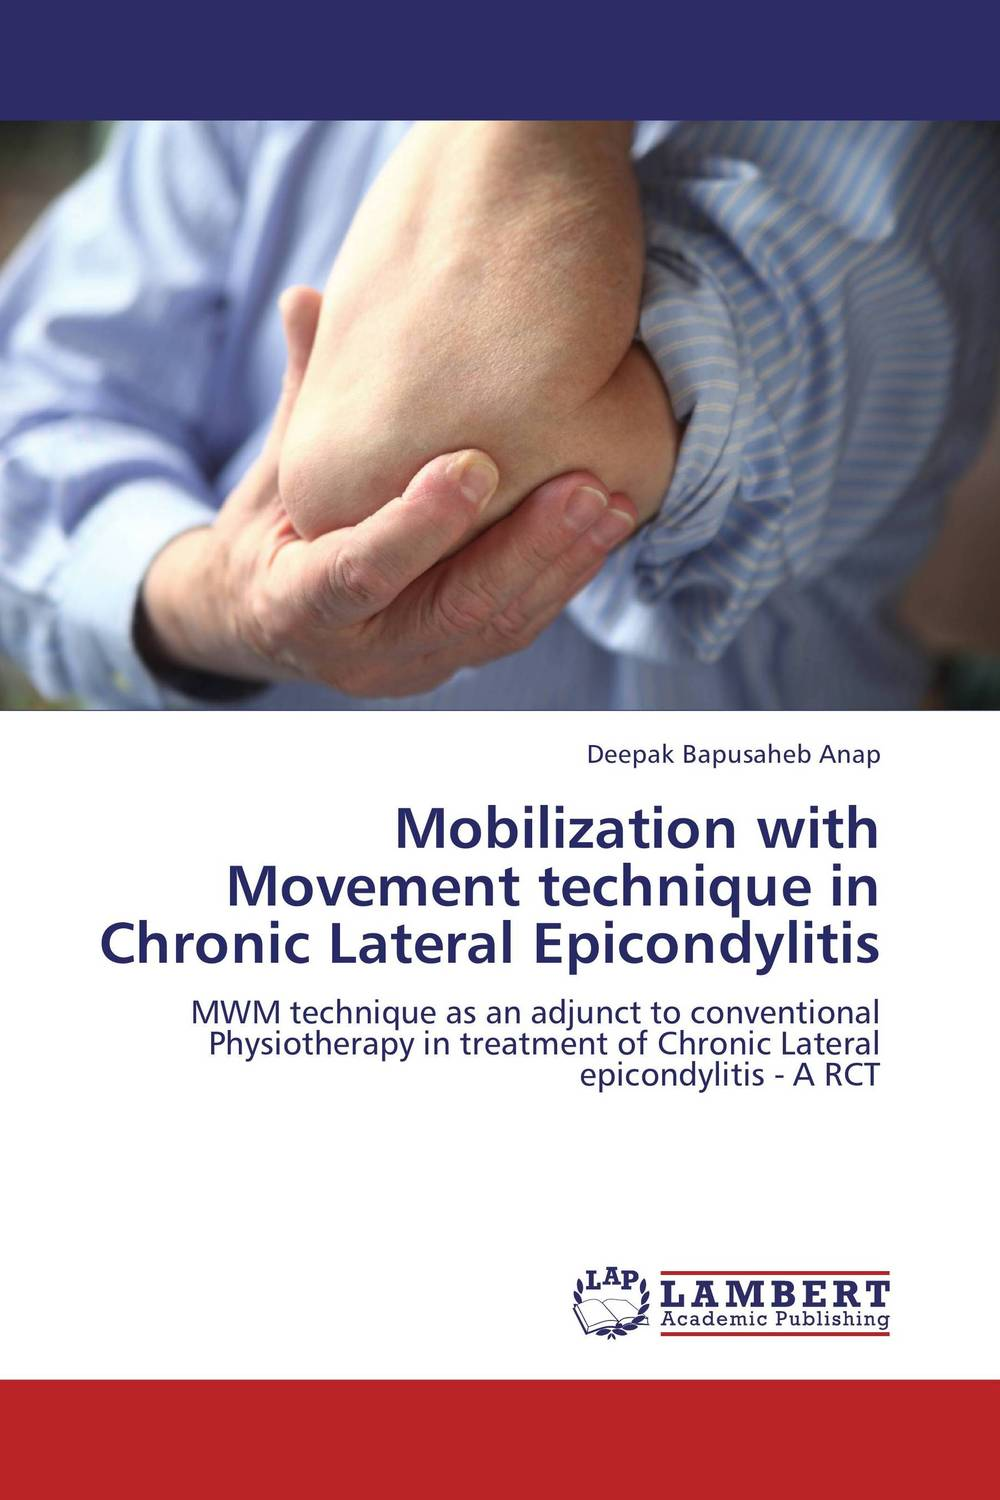 Mobilization with Movement technique in Chronic Lateral Epicondylitis keen pain massager for the pain in knee joint and osteoarthritis knee treatment